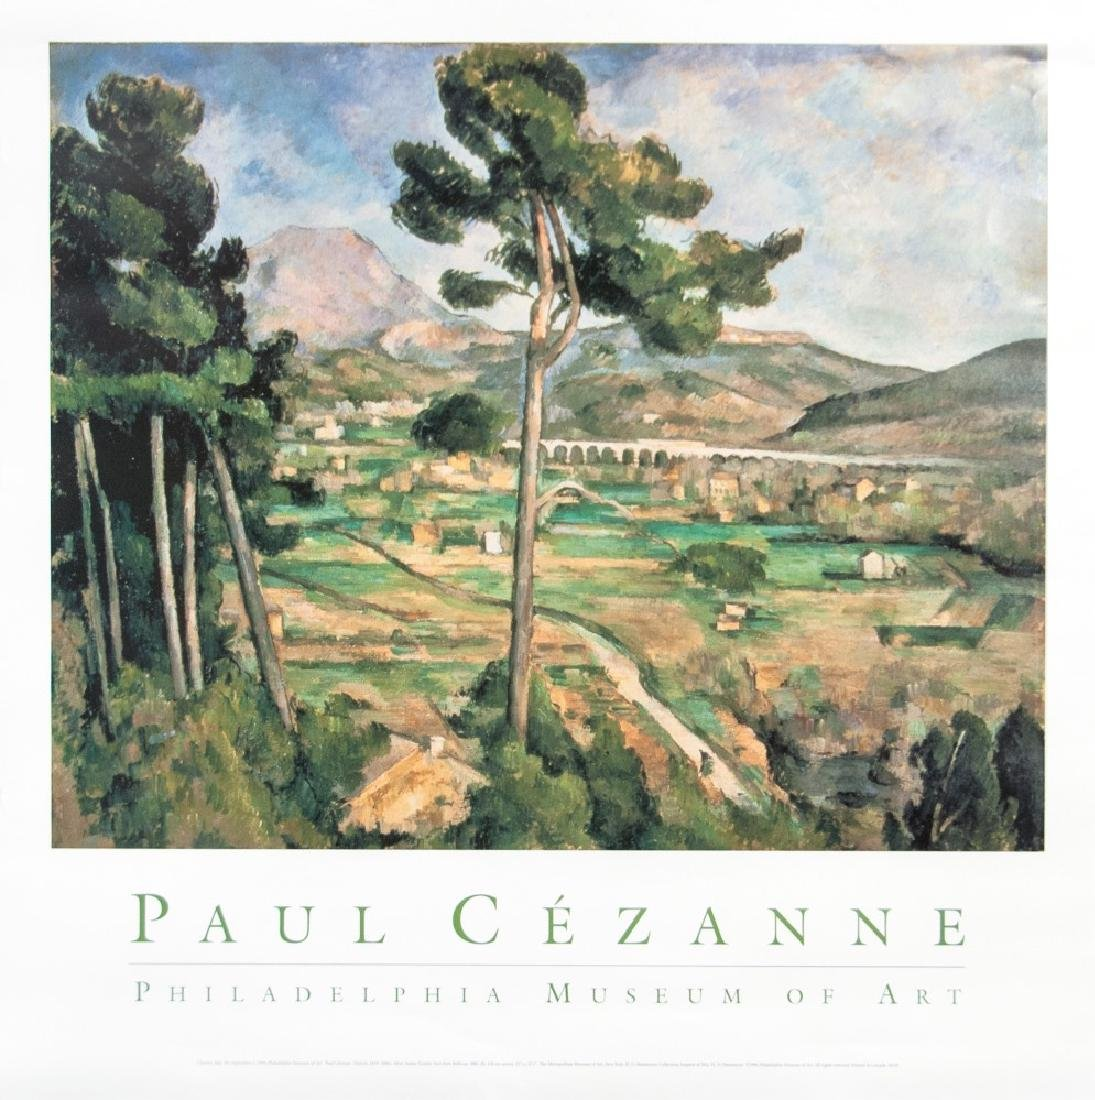 PAUL CEZANNE GALLERY POSTER